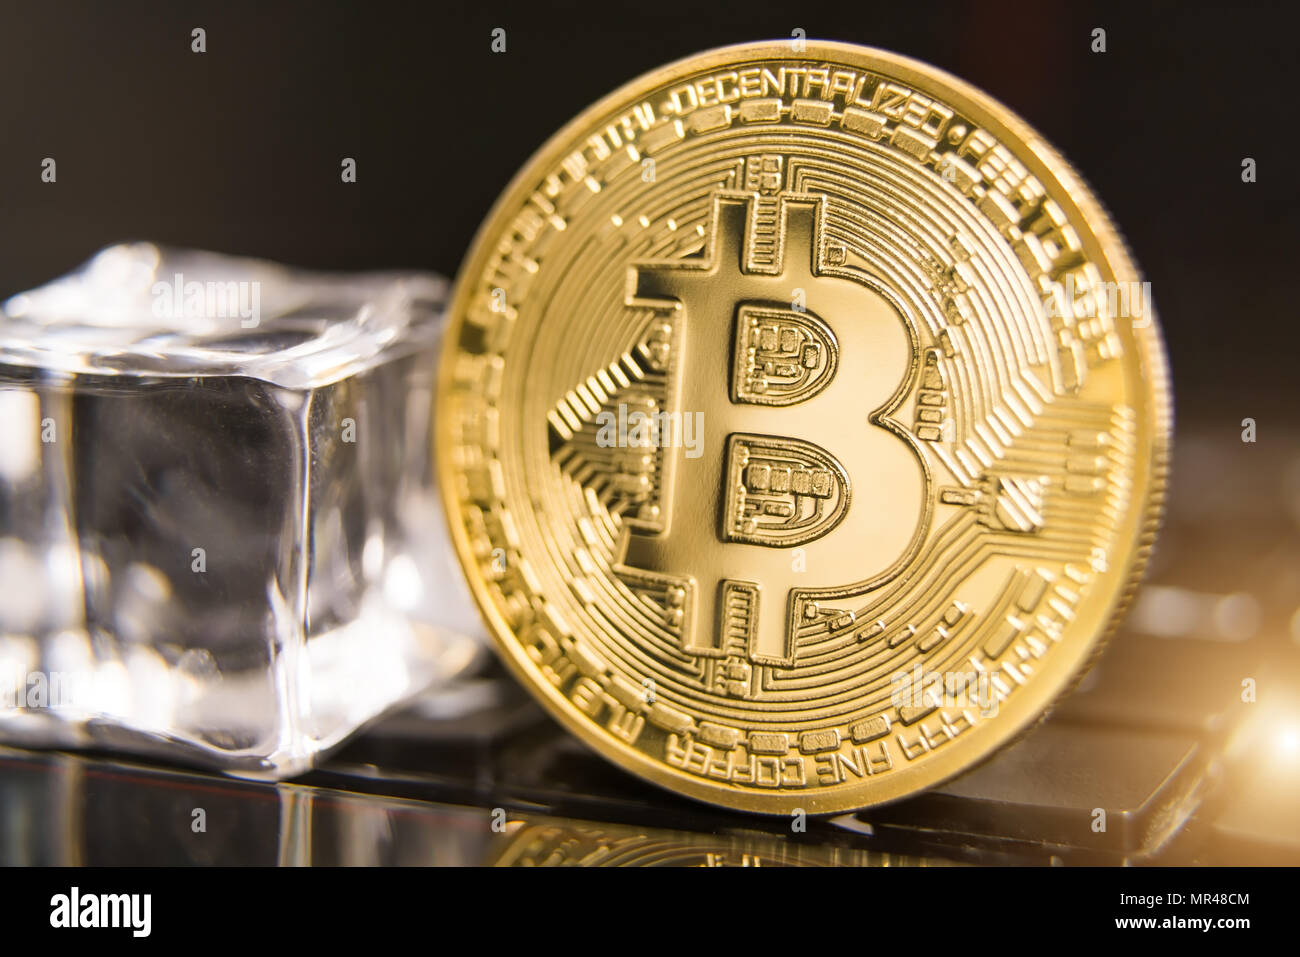 cryptocurrency coins - Bitcoin, Litecoin, Ethereum, Ripple